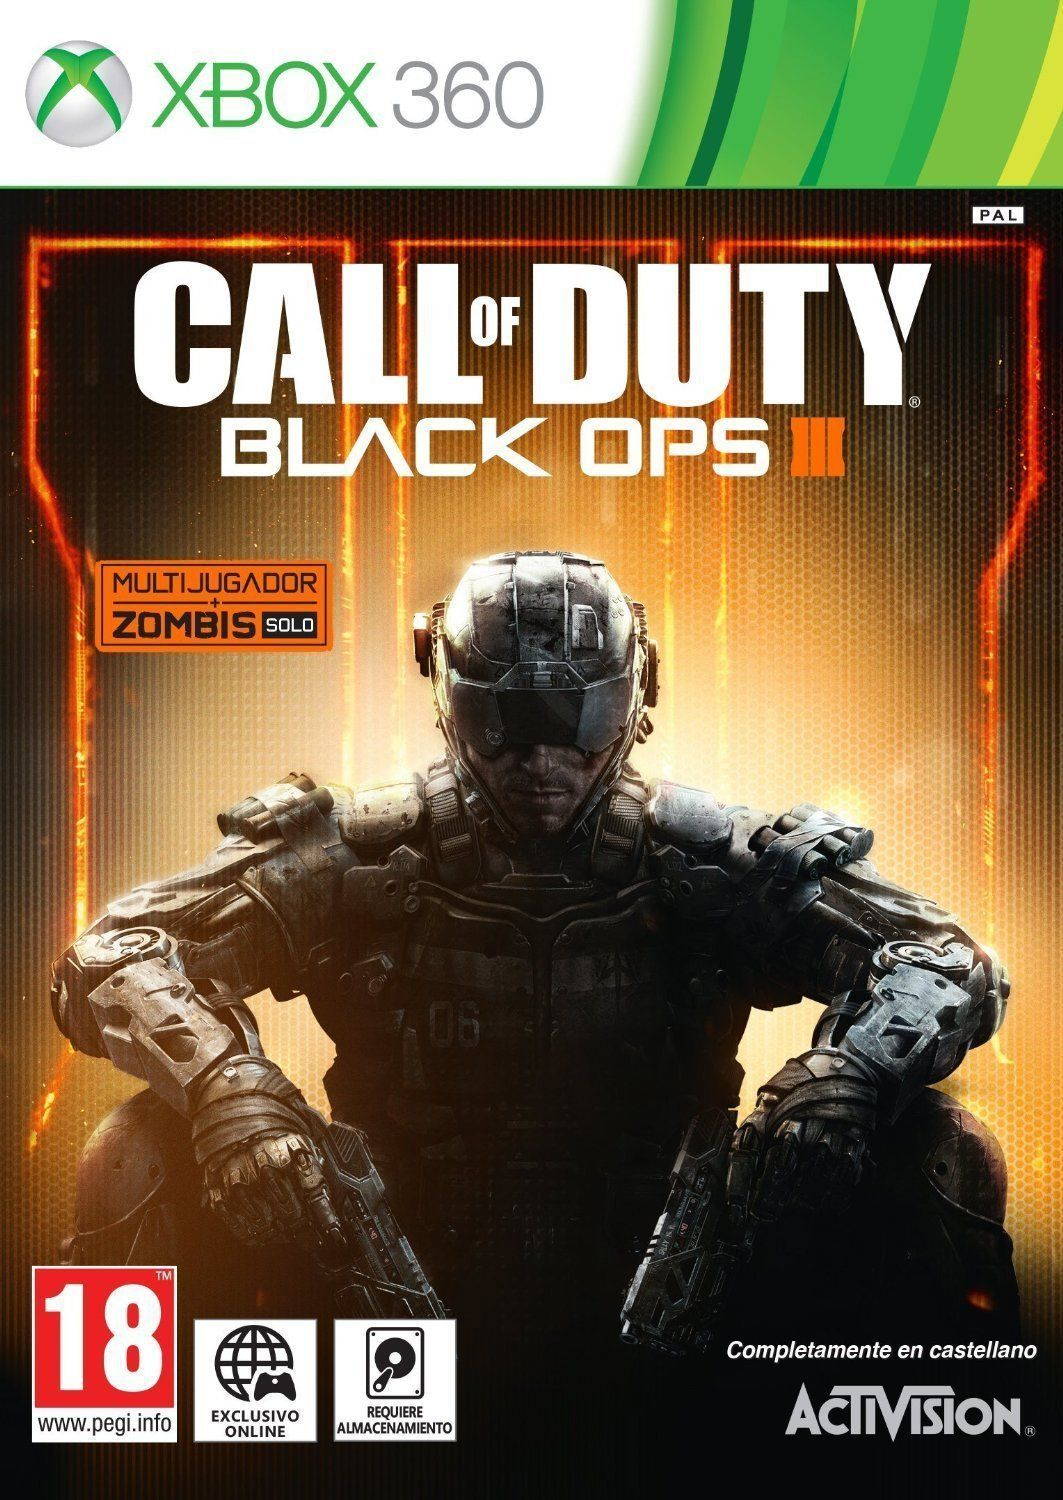 Imagen 31 de Call of Duty: Black Ops III para Xbox 360